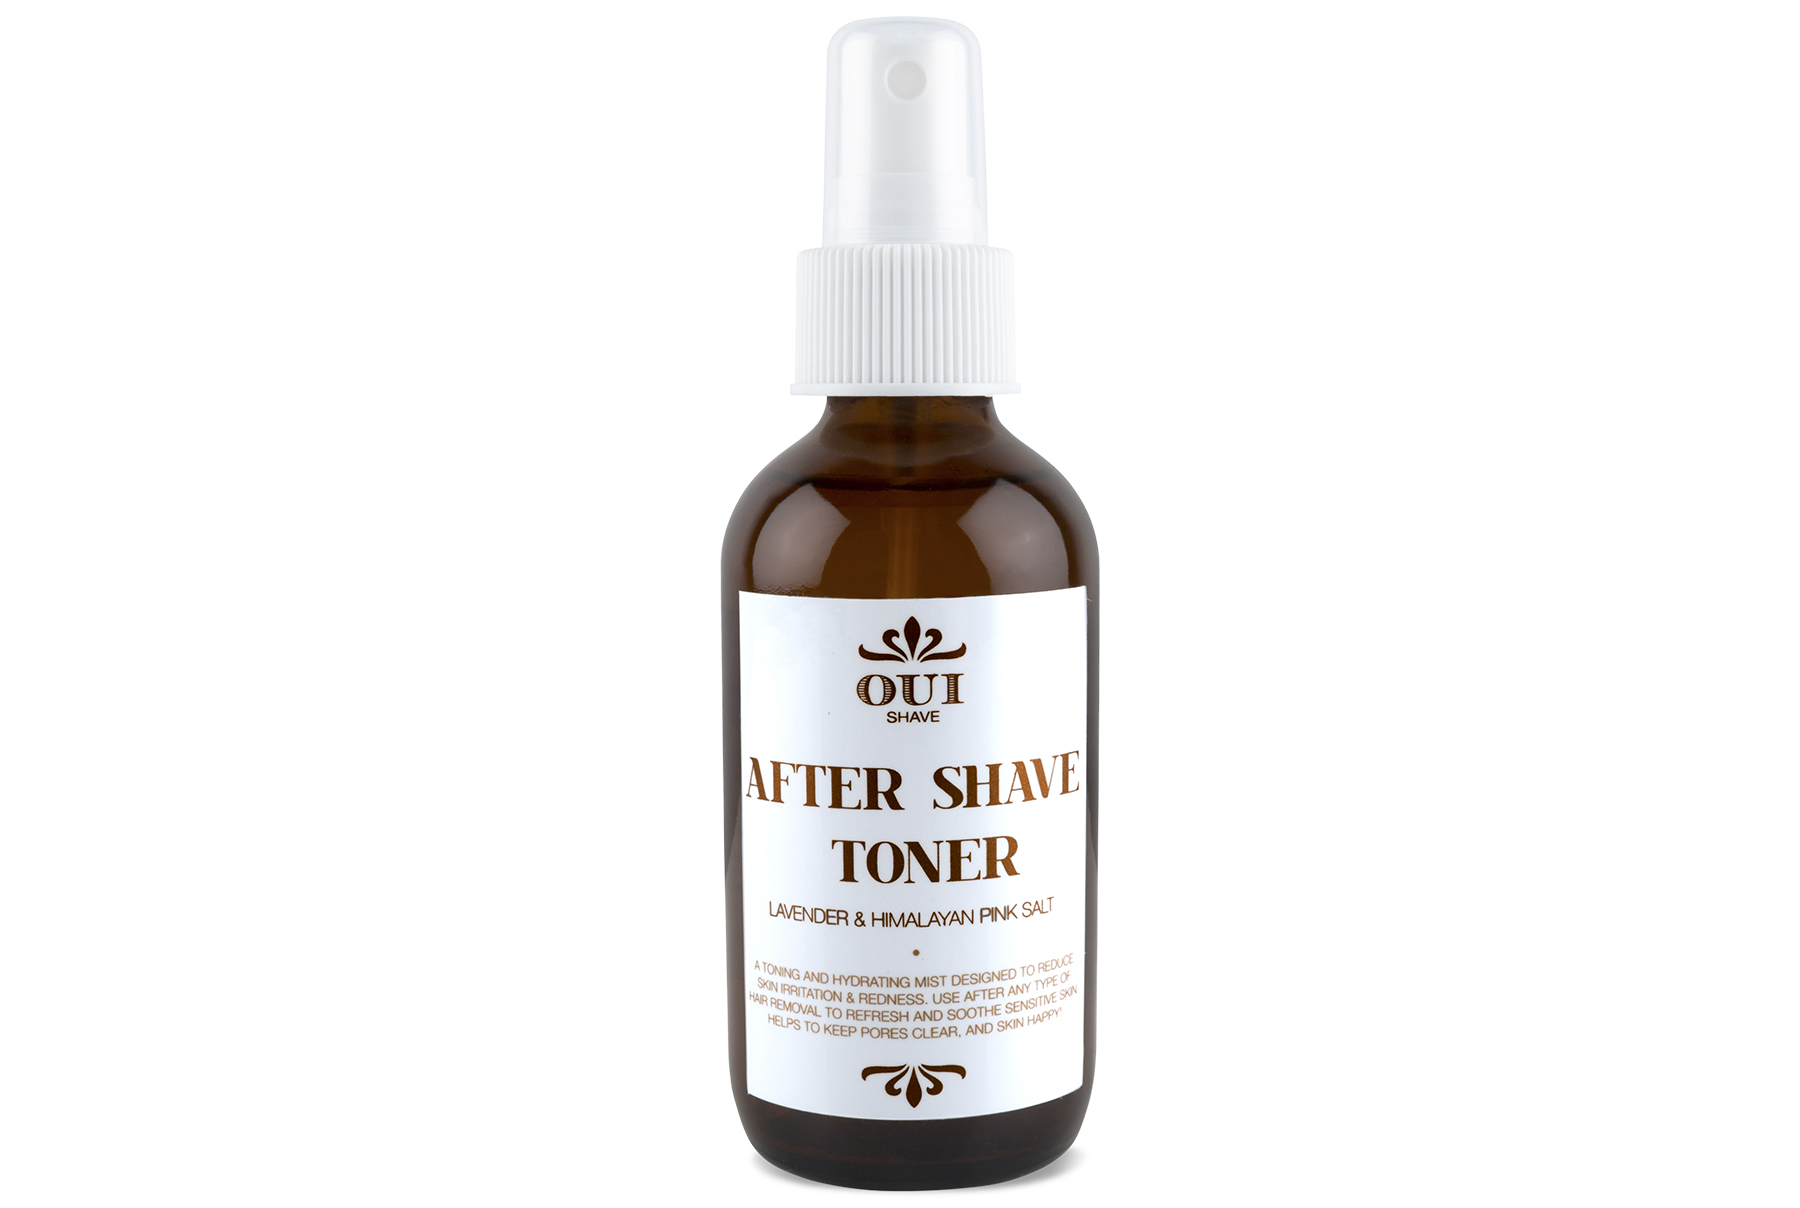 Oui Shave Himalayan Sea Salt & Lavender After Shave Toner